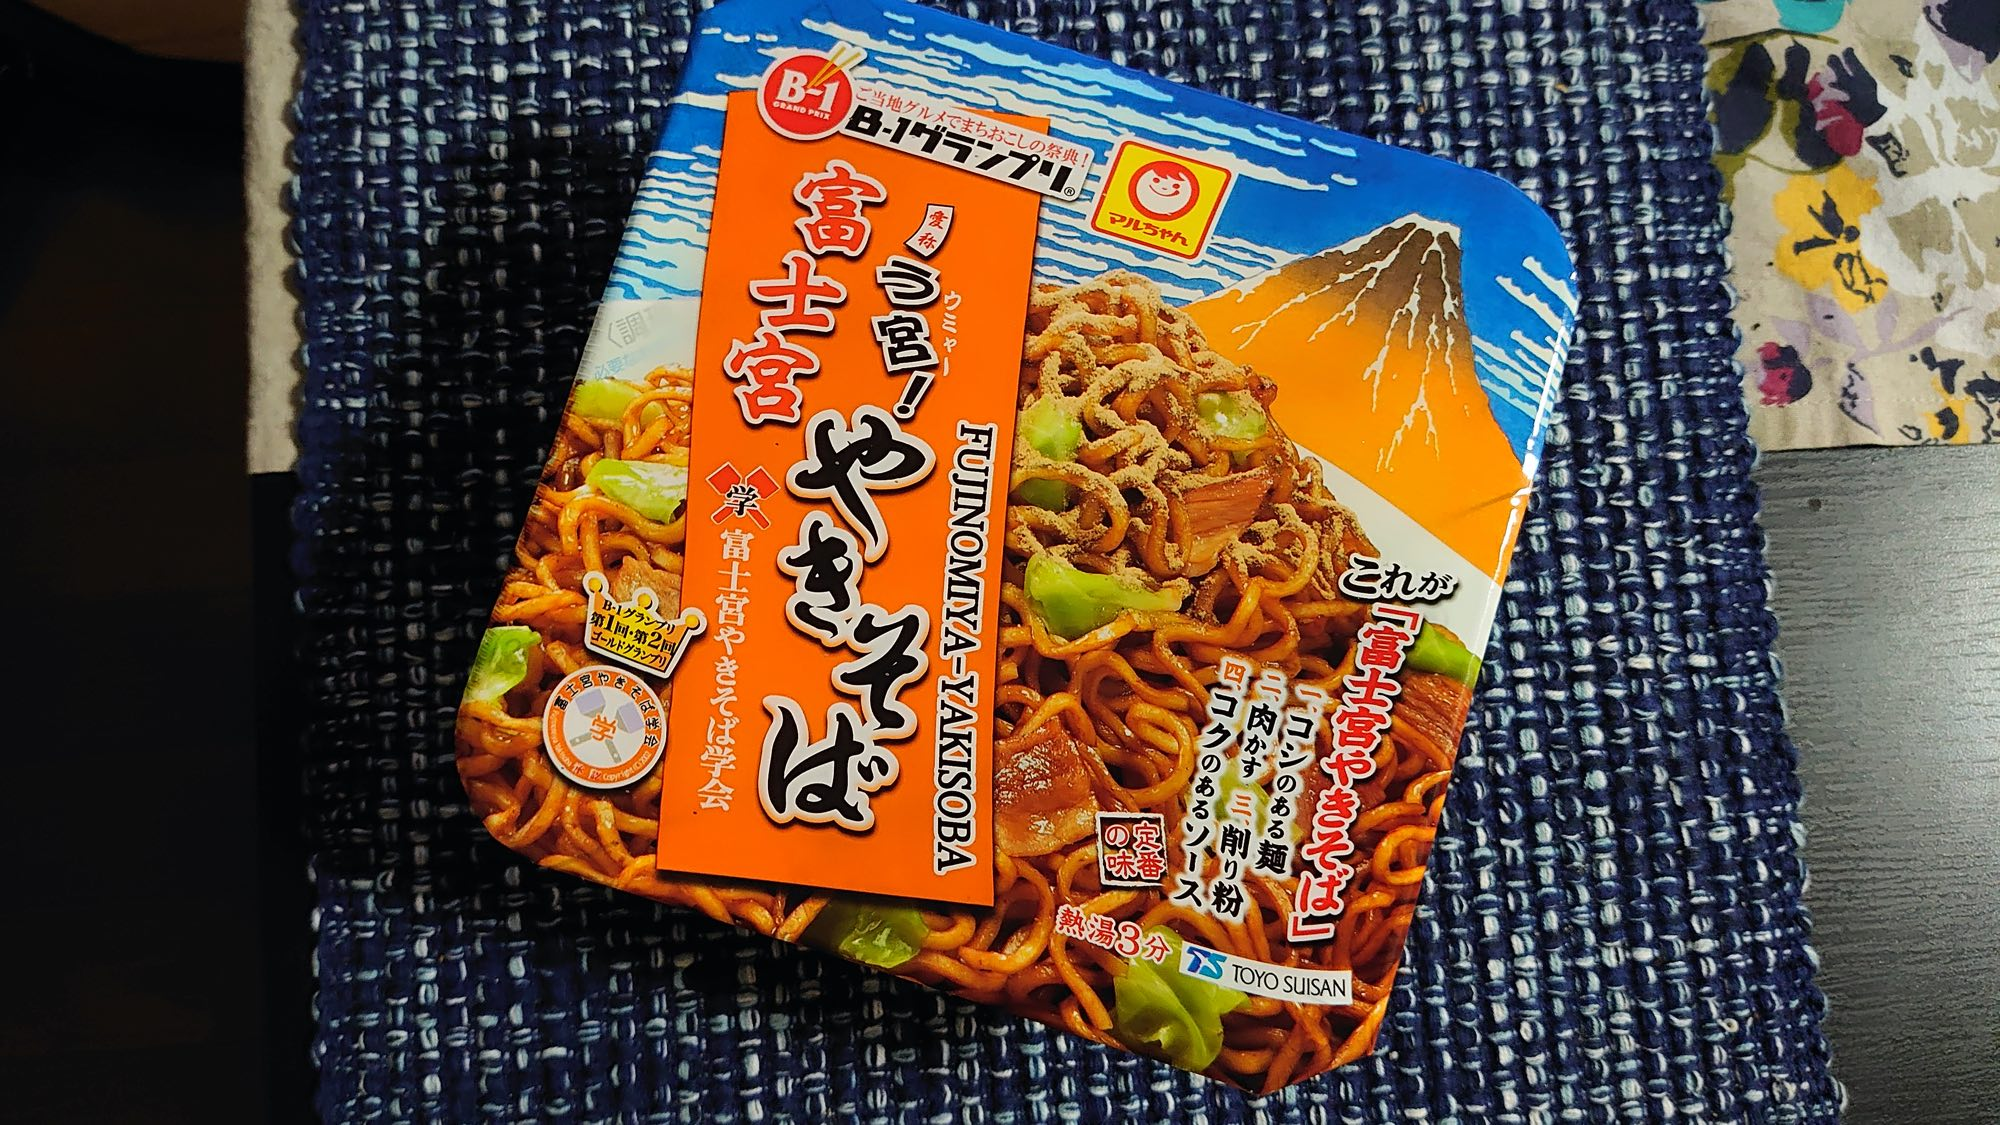 Eating Like A Local A B-Kyu Gurume - A packag of Fujinomiya Yakisoba